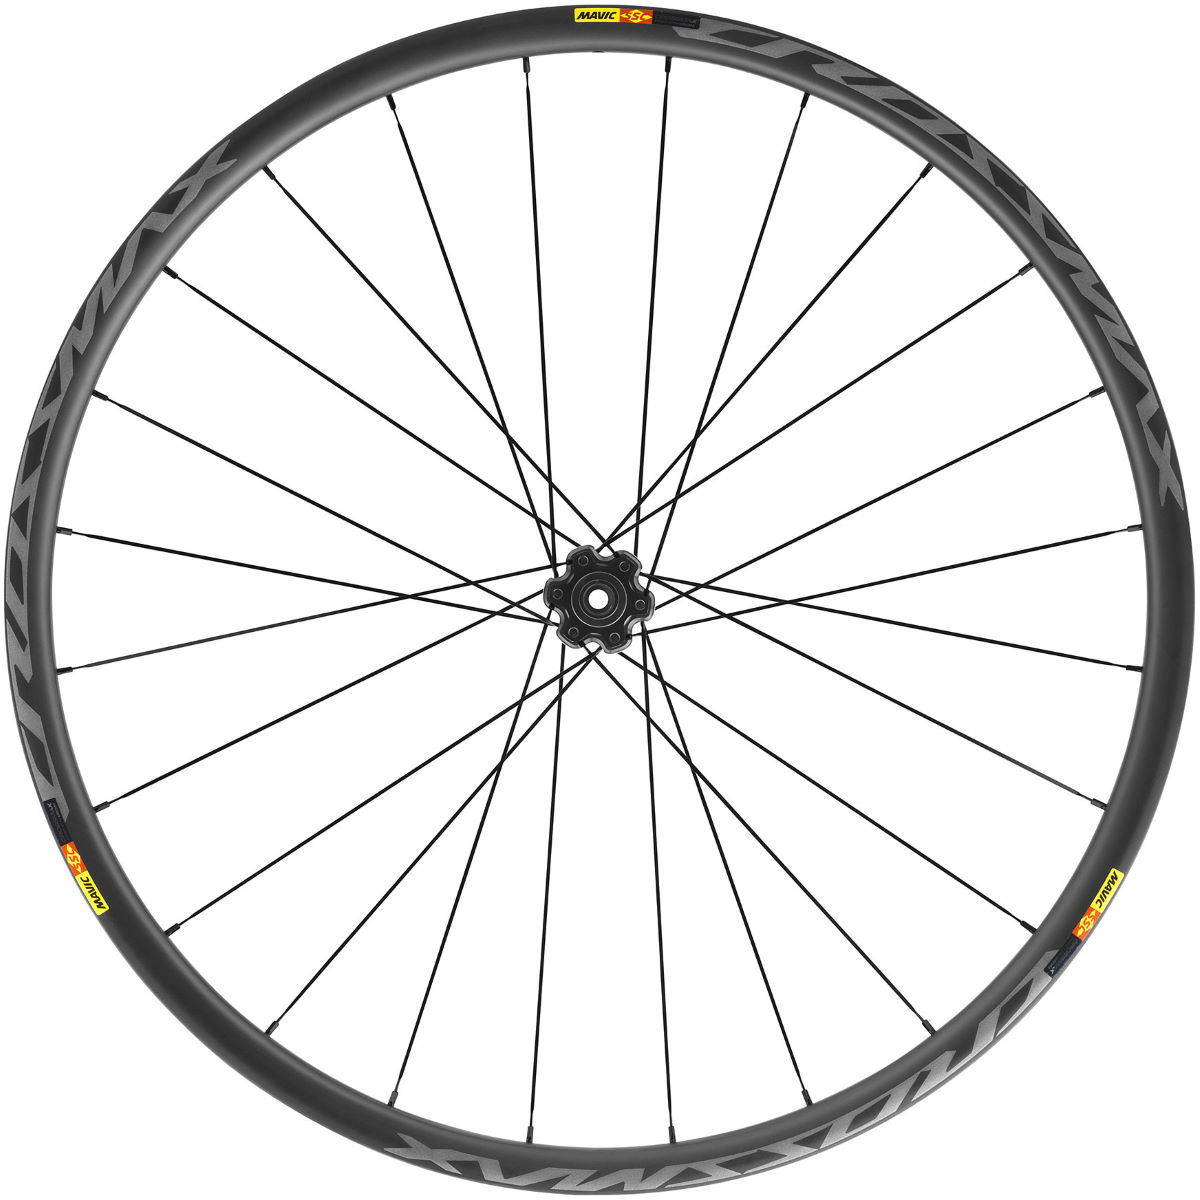 Mavic Xmax Pro Carbon Front Wheel - Front wheels